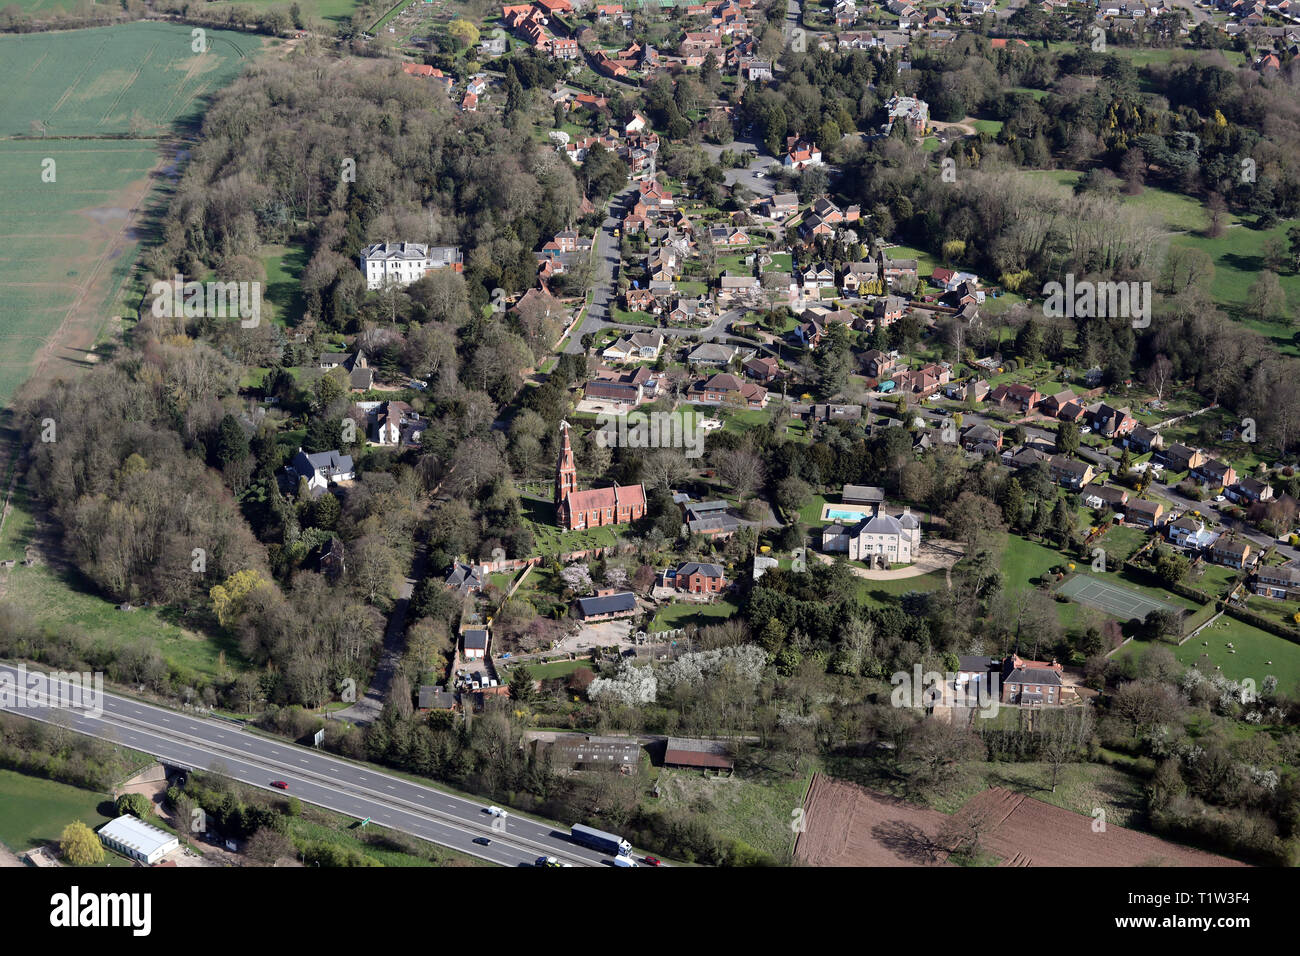 aerial view of the village of Winthorpe near Newark, Nottinghamshire - Stock Image